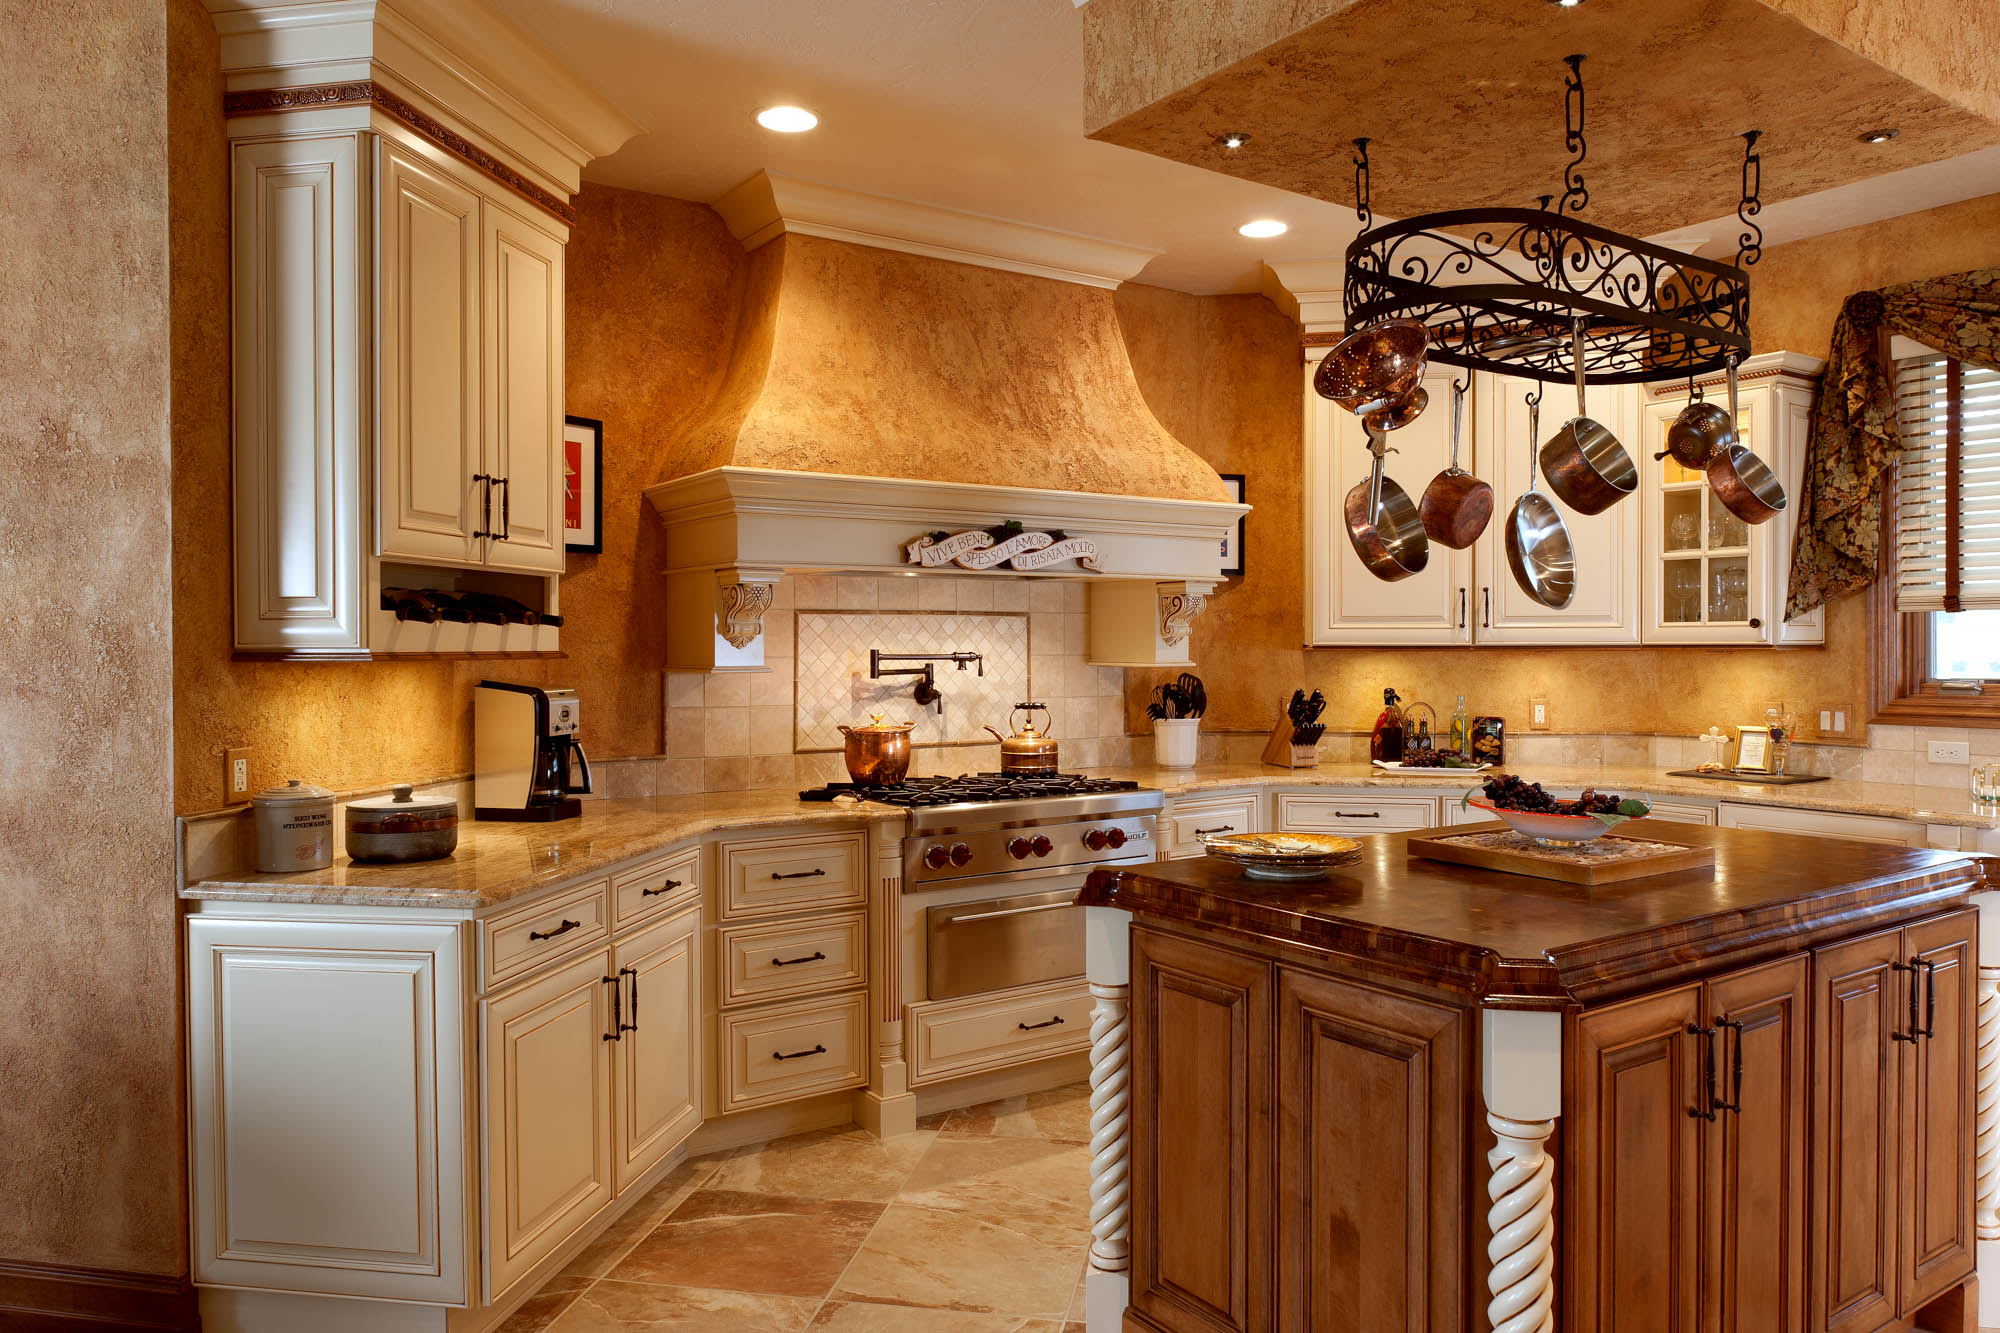 Painted kitchen cabinets in Linen with Carmel Glaze by Showplace Cabinetry - view 2